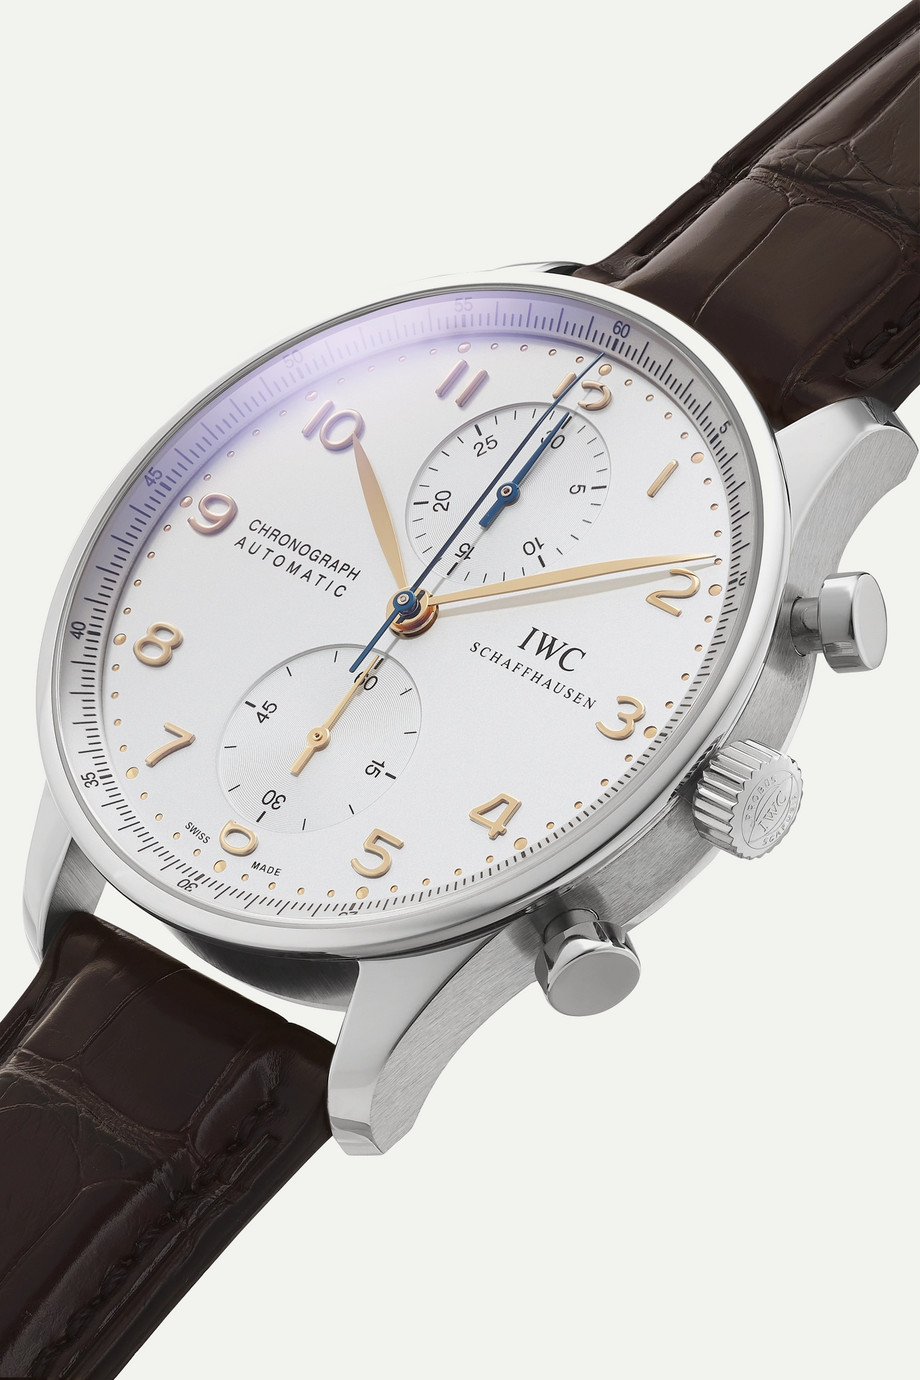 IWC SCHAFFHAUSEN Portugieser Chronograph Automatic 40.9mm stainless steel and alligator watch